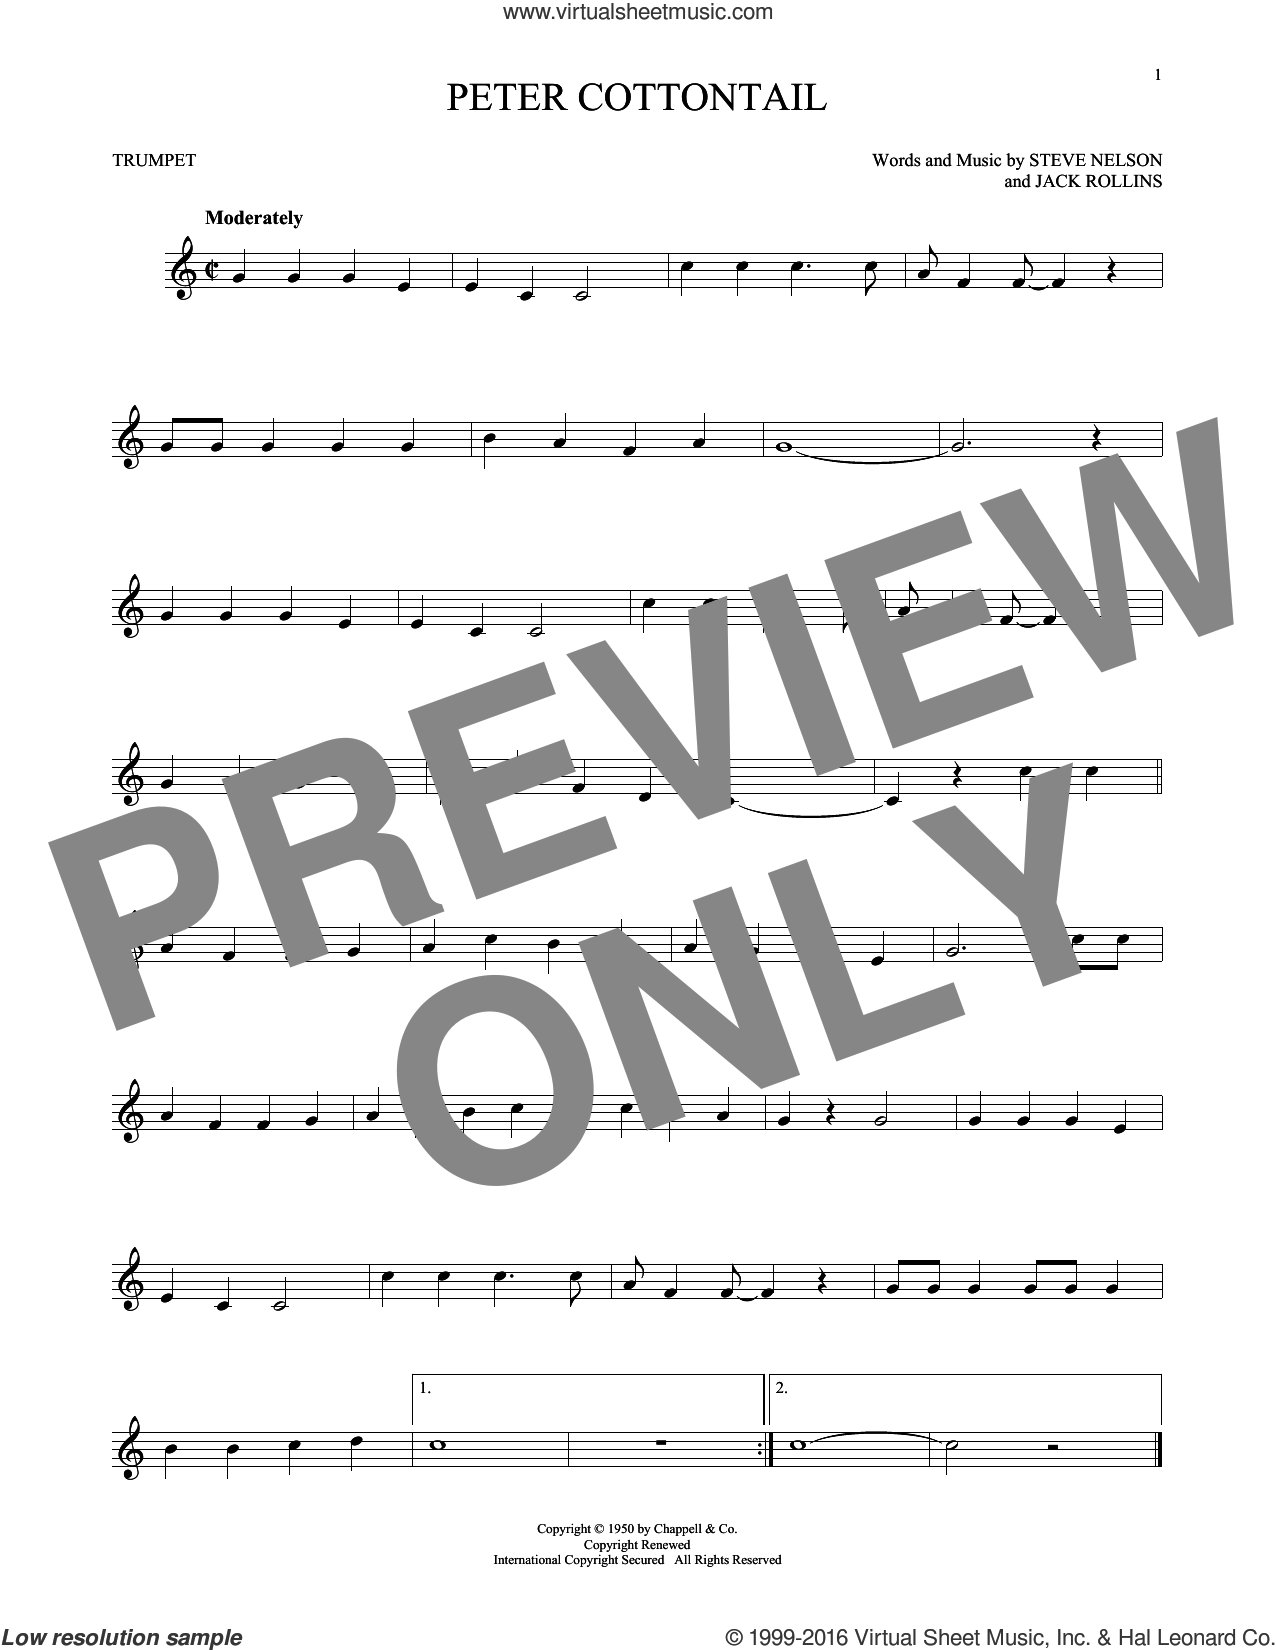 Peter Cottontail sheet music for trumpet solo by Steve Nelson and Jack Rollins, intermediate skill level